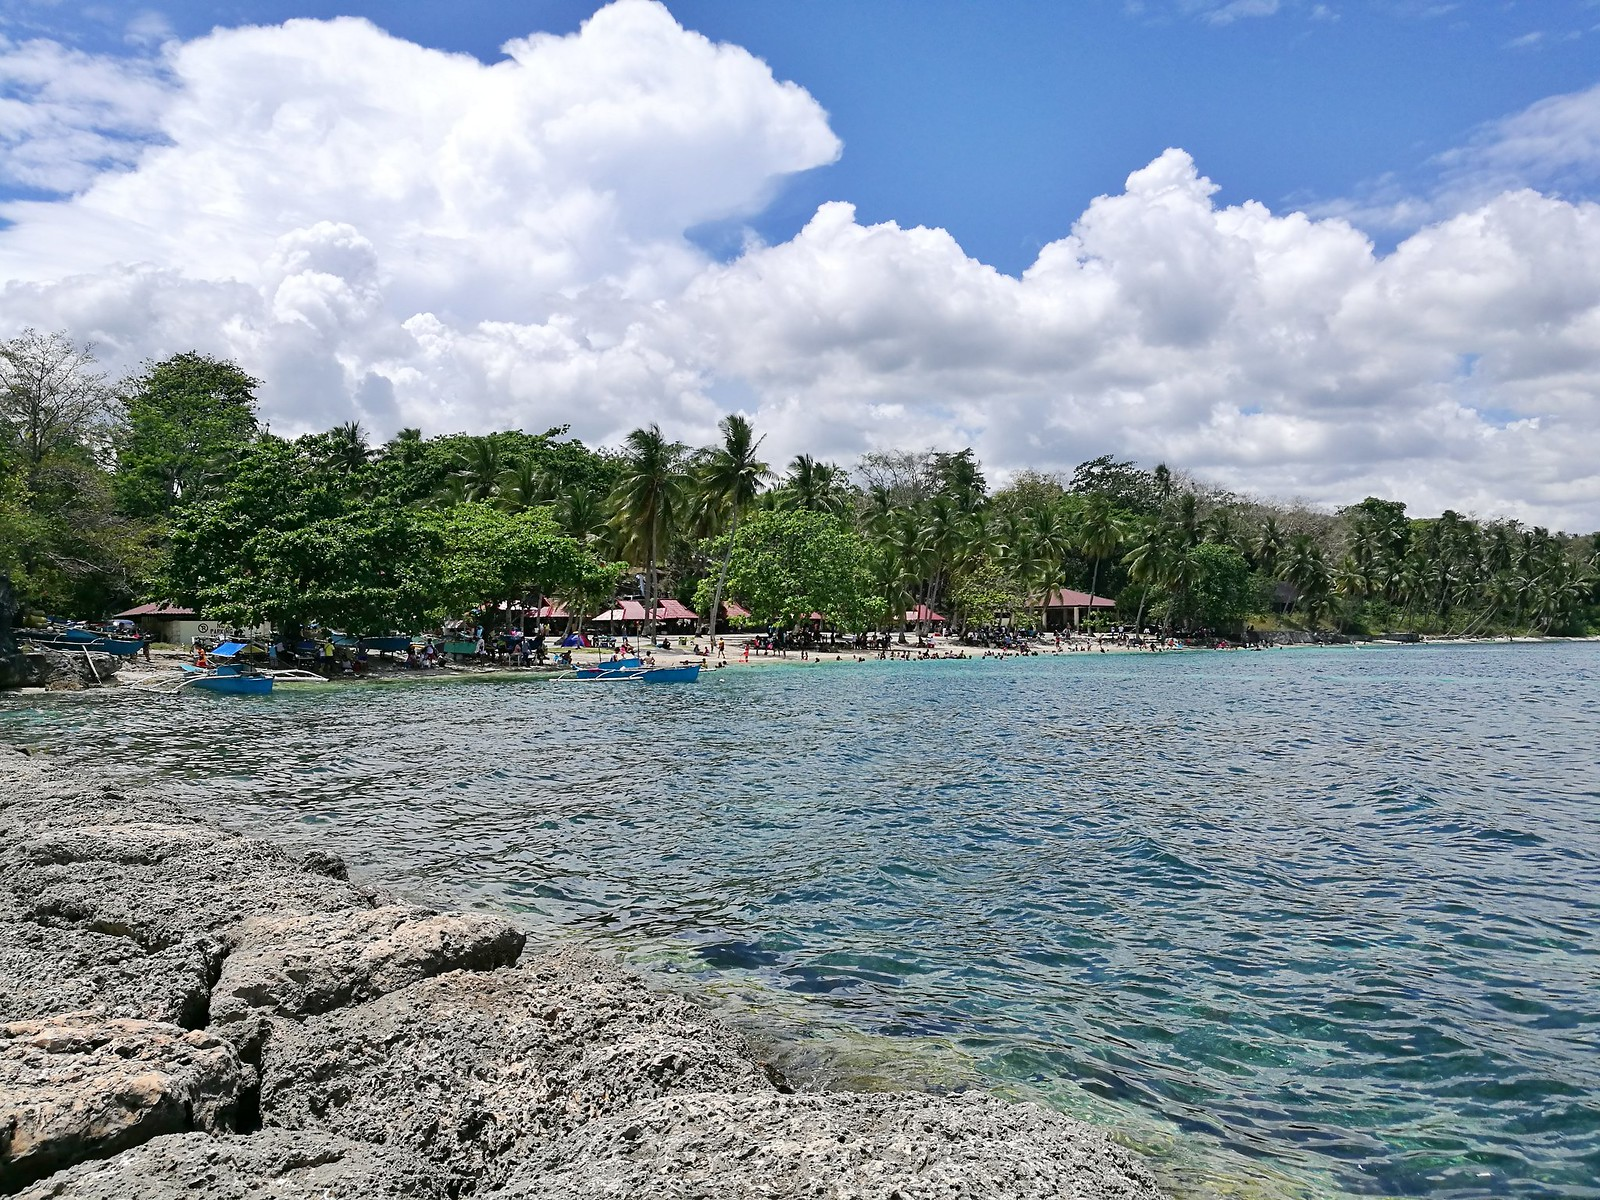 Cebu Summer Destination: Dalaguete Beach Park